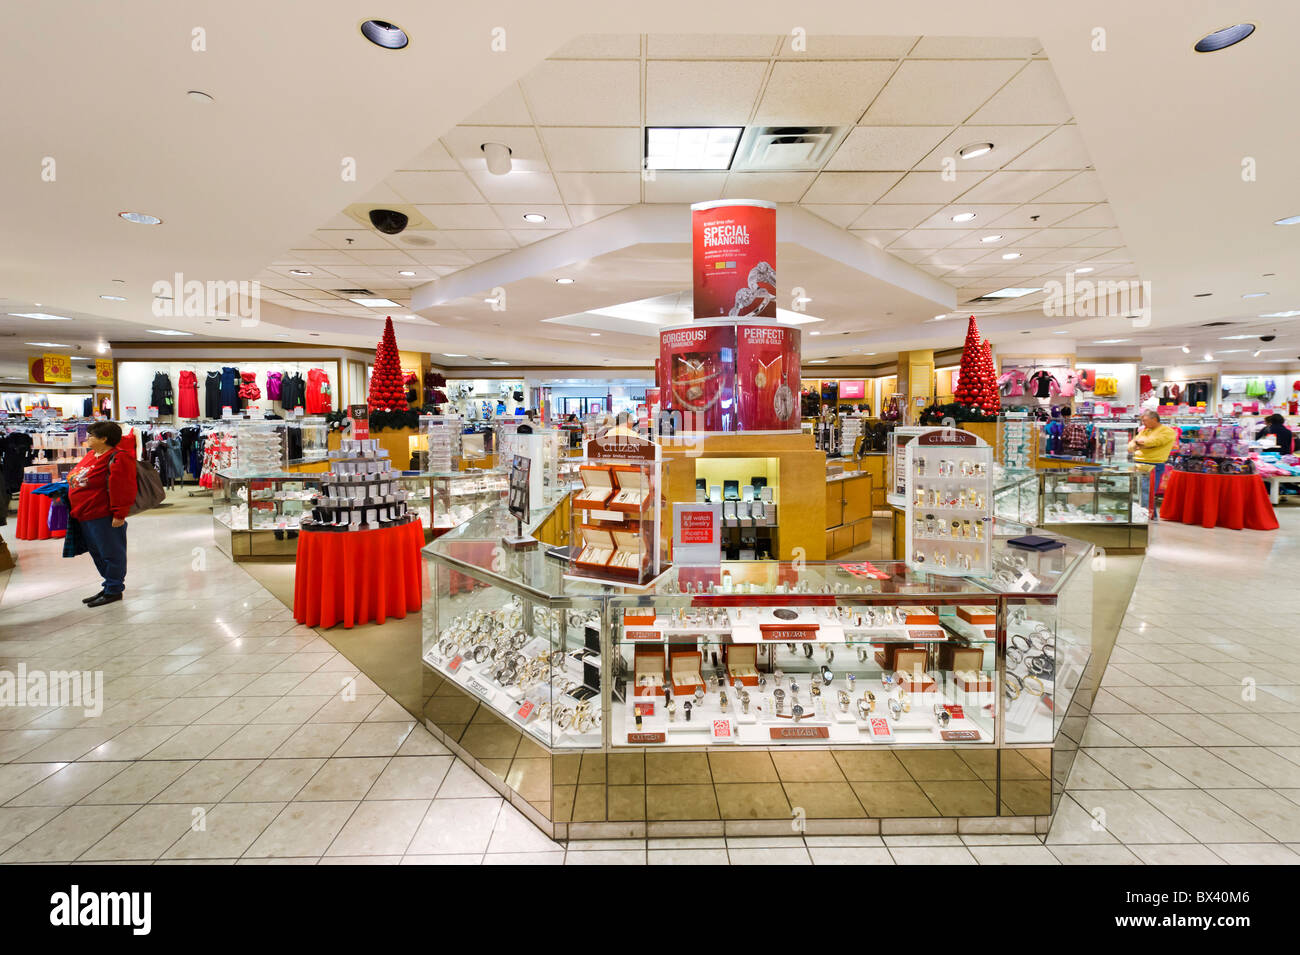 Jcpenney makeup counters mugeek vidalondon for Jc penneys